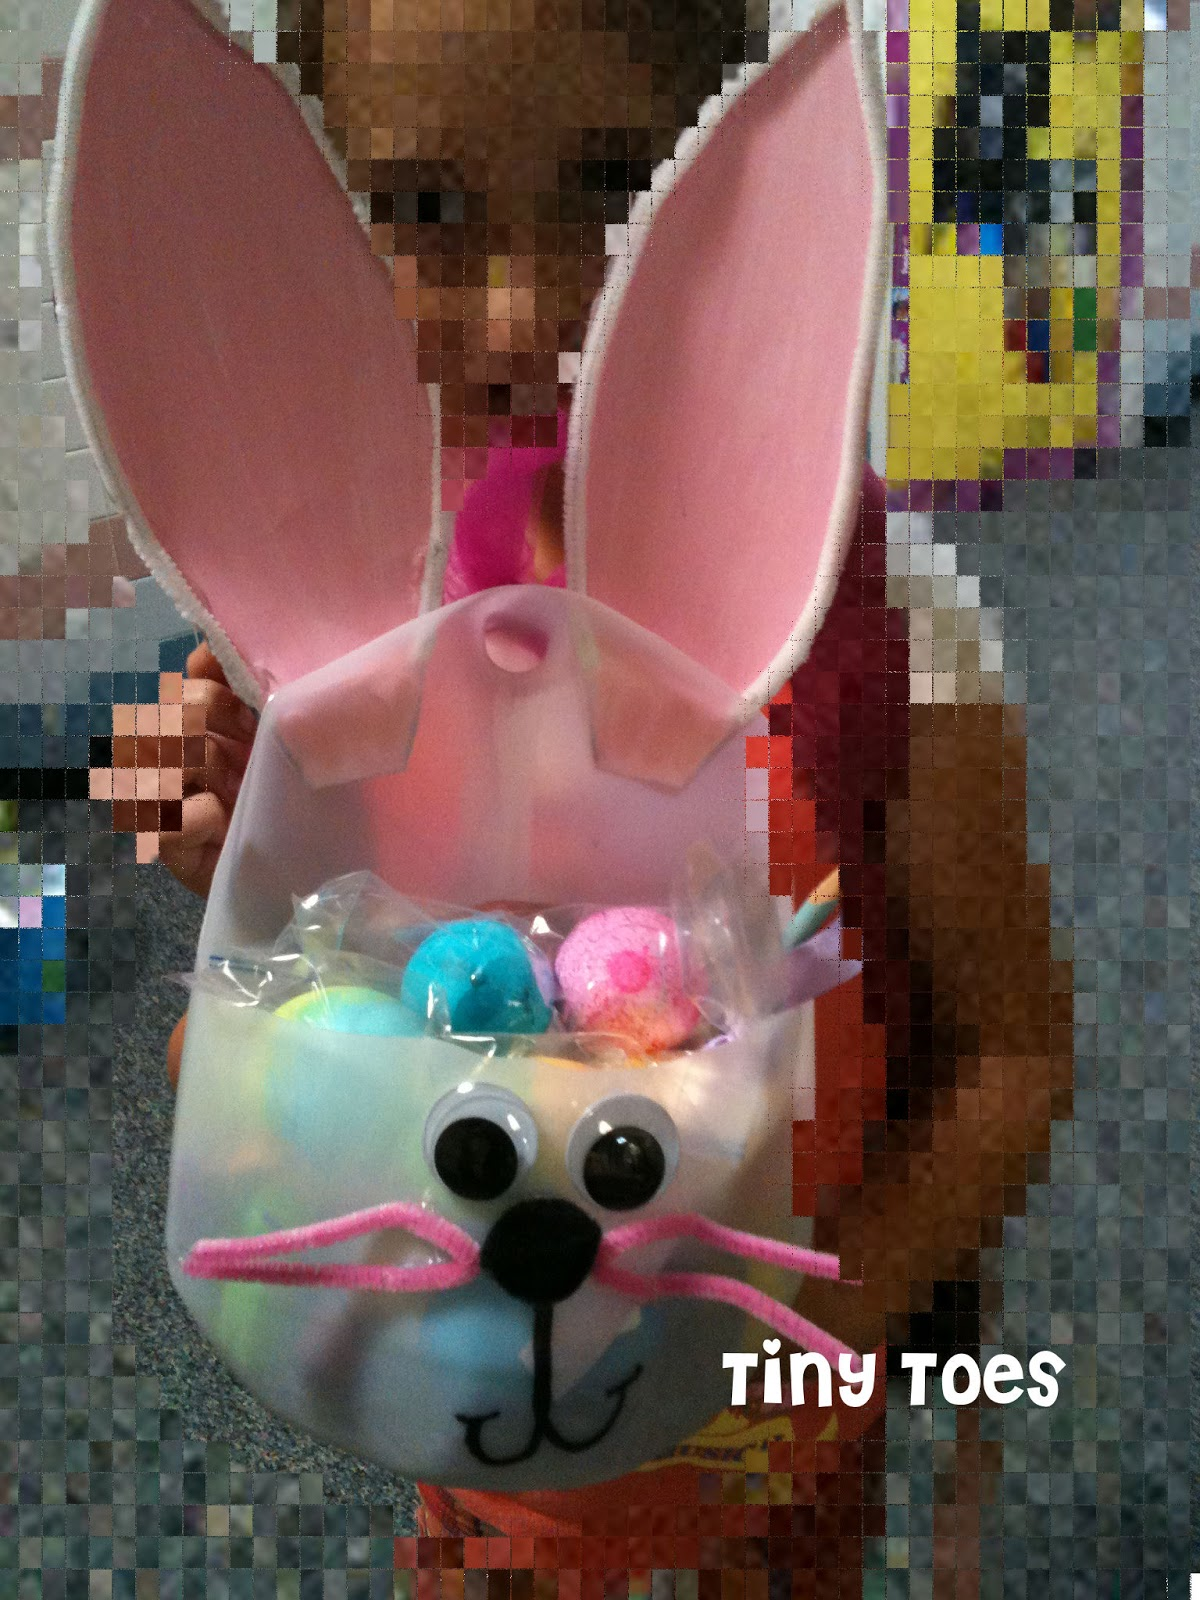 Tiny toes easter baskets for all the kids i love the idea behind these baskets i teach in a title 1 district most are on free or reduced lunches so not everyone can afford the luxury of an easter negle Image collections